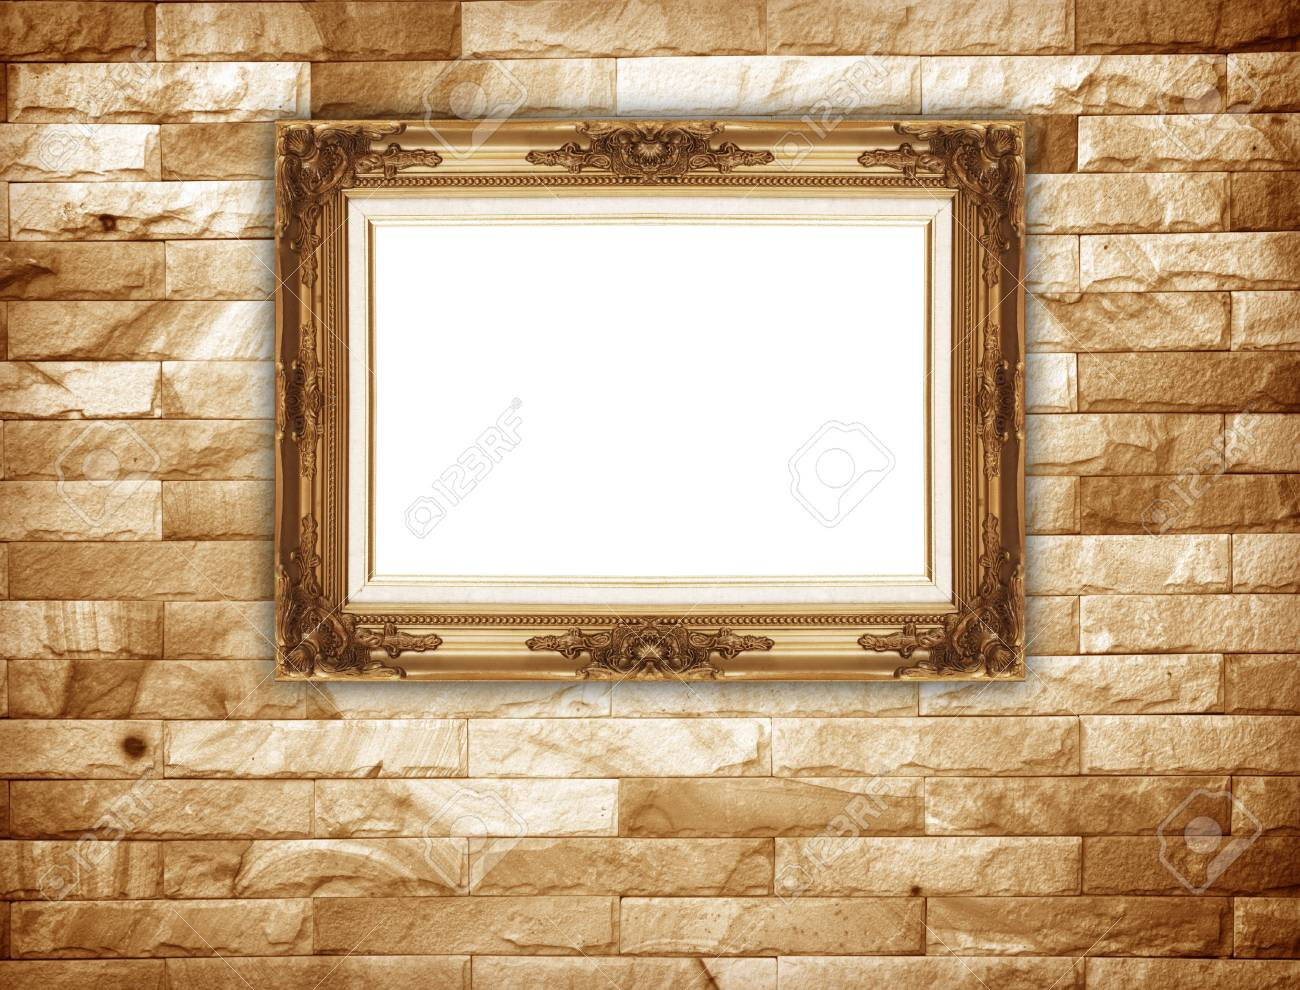 Background Of Stone Wall Decorative Stone With Gold Frame. Stock ...